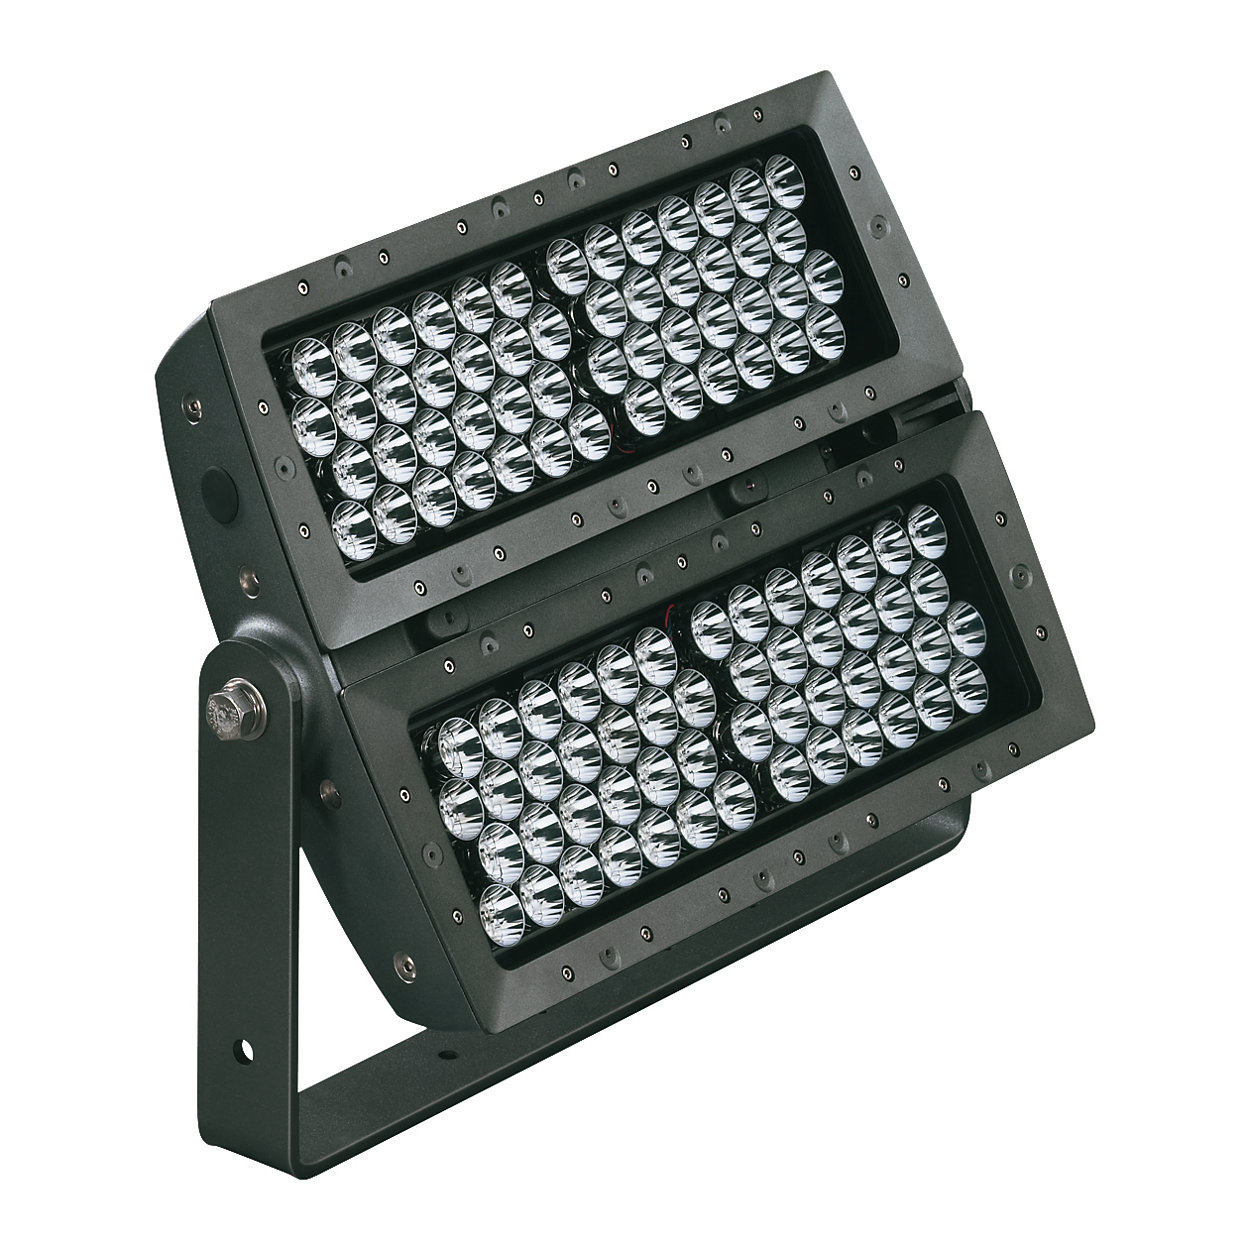 eColor Reach Powercore – Premium long-throw exterior LED floodlight with solid color light